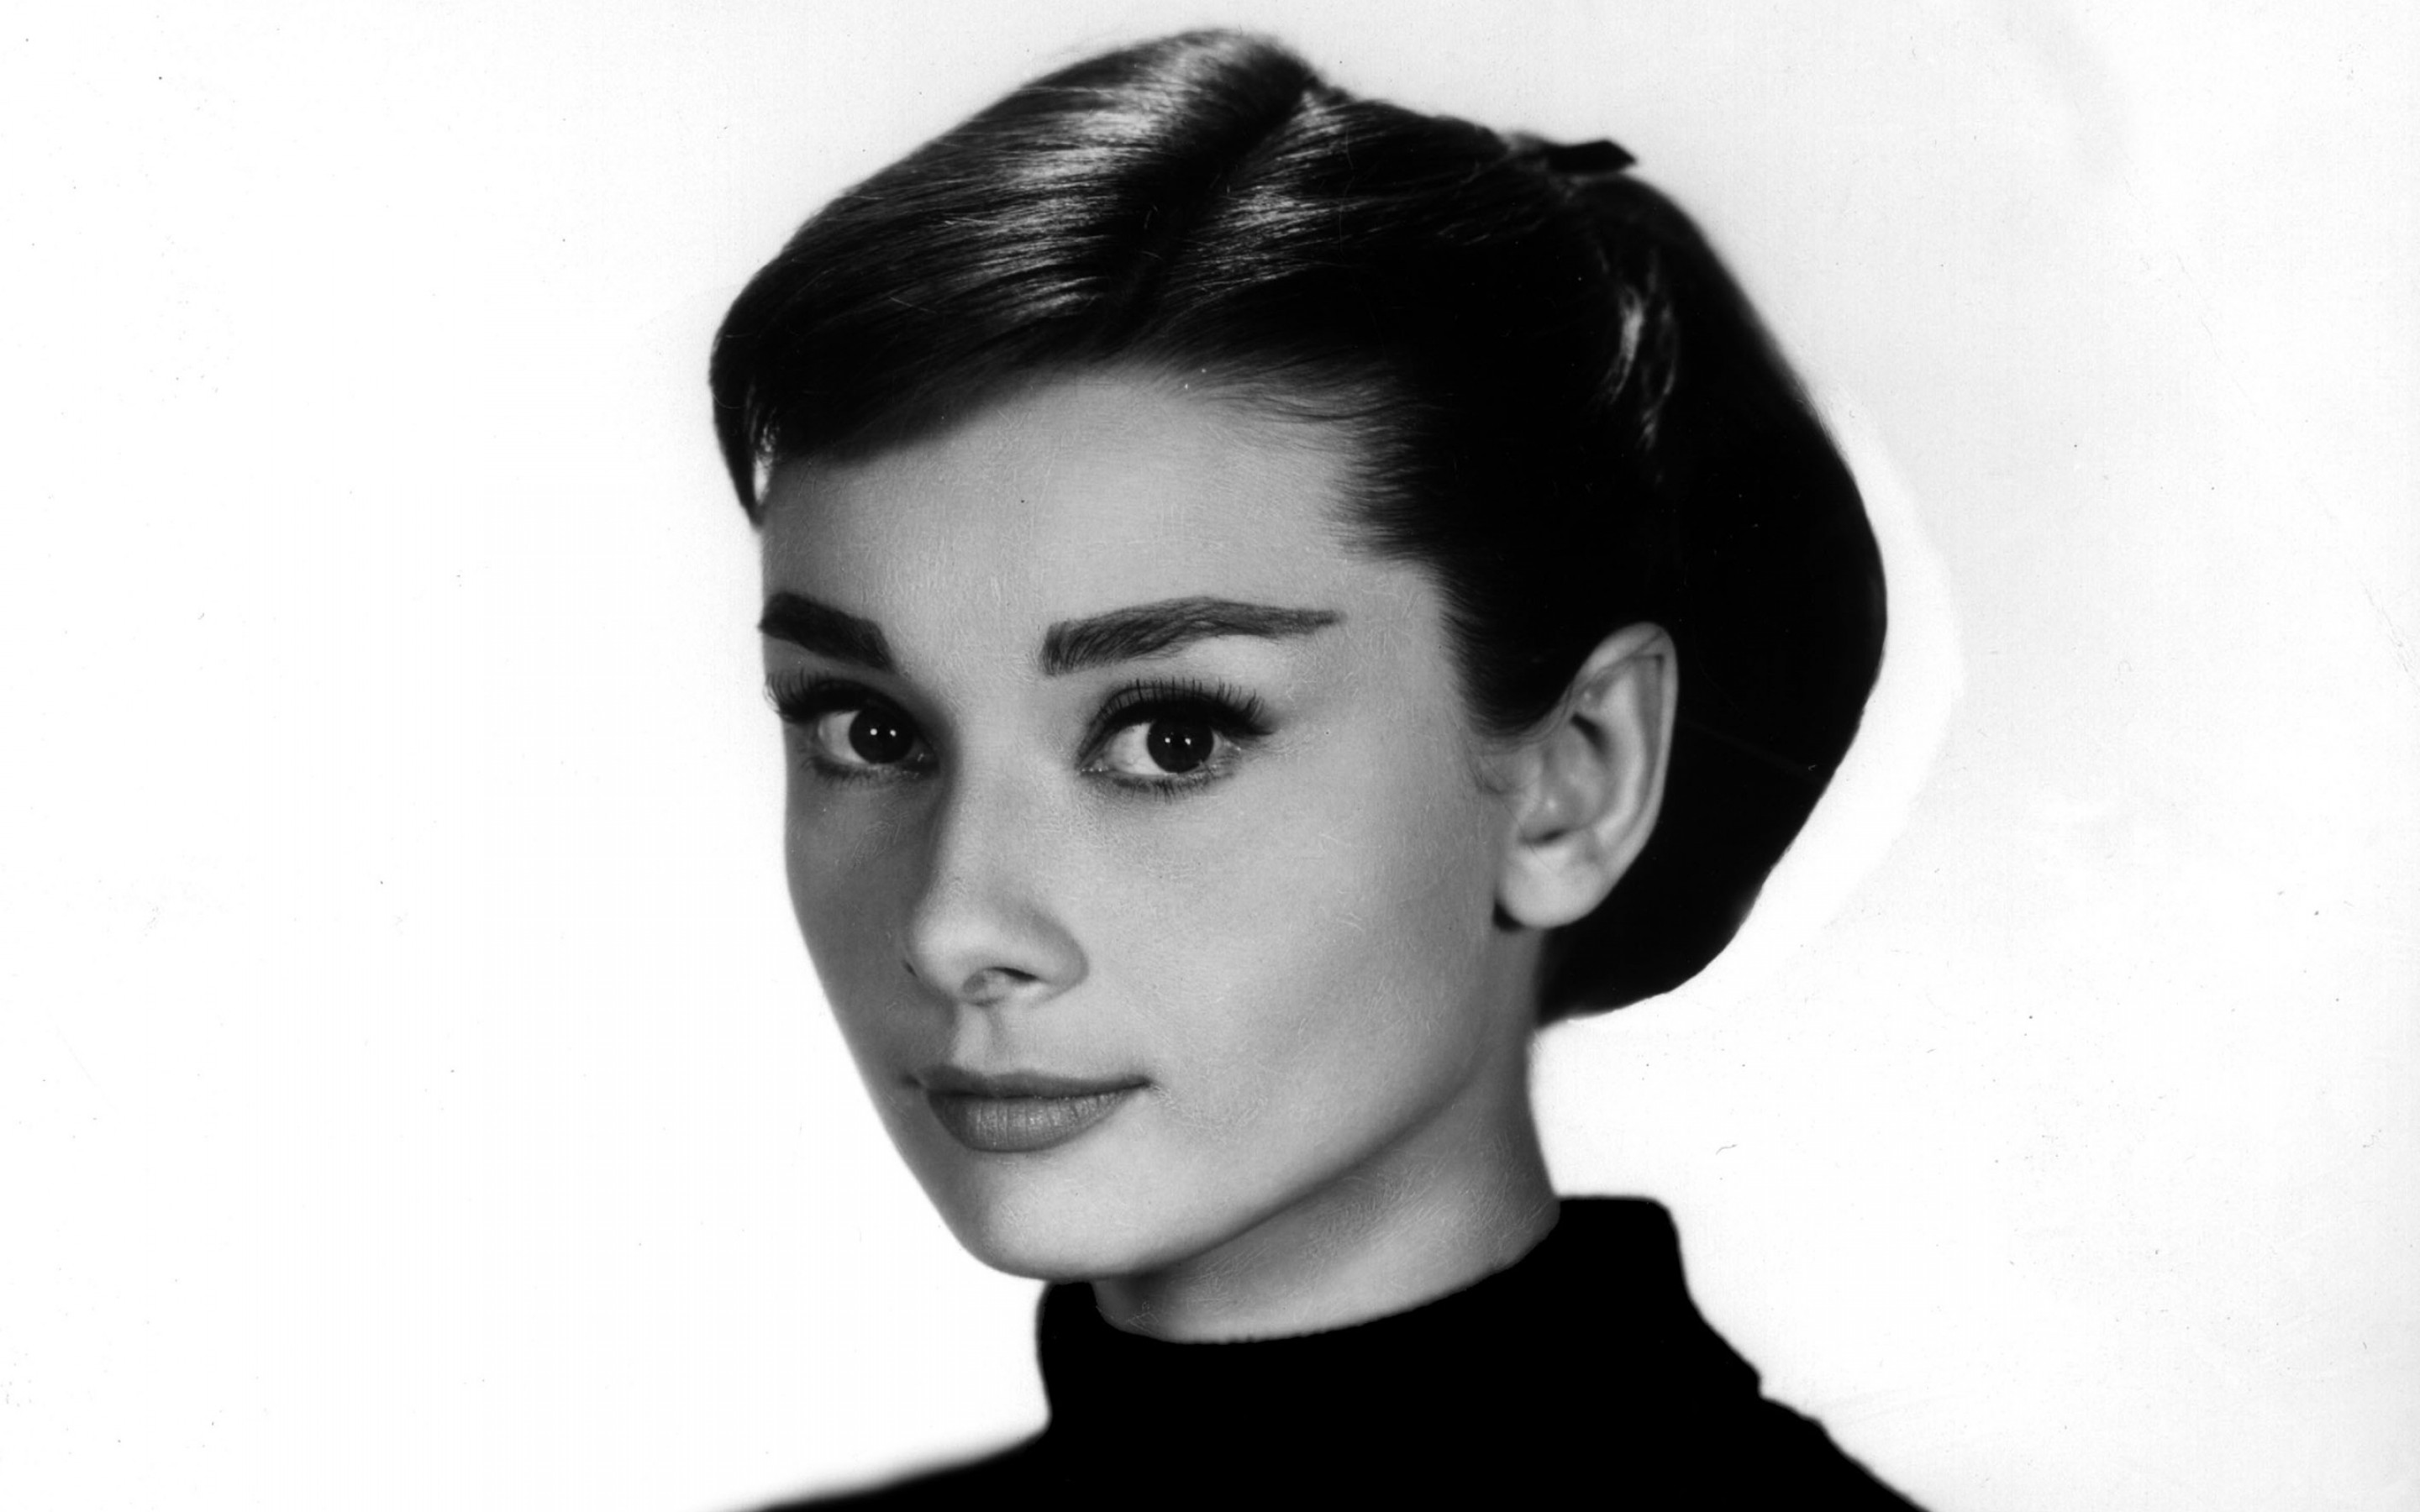 ... The original character design of Aurora was done by Tom Oreb, who modeled the princess after the elegant, slender features of actress Audrey Hepburn.